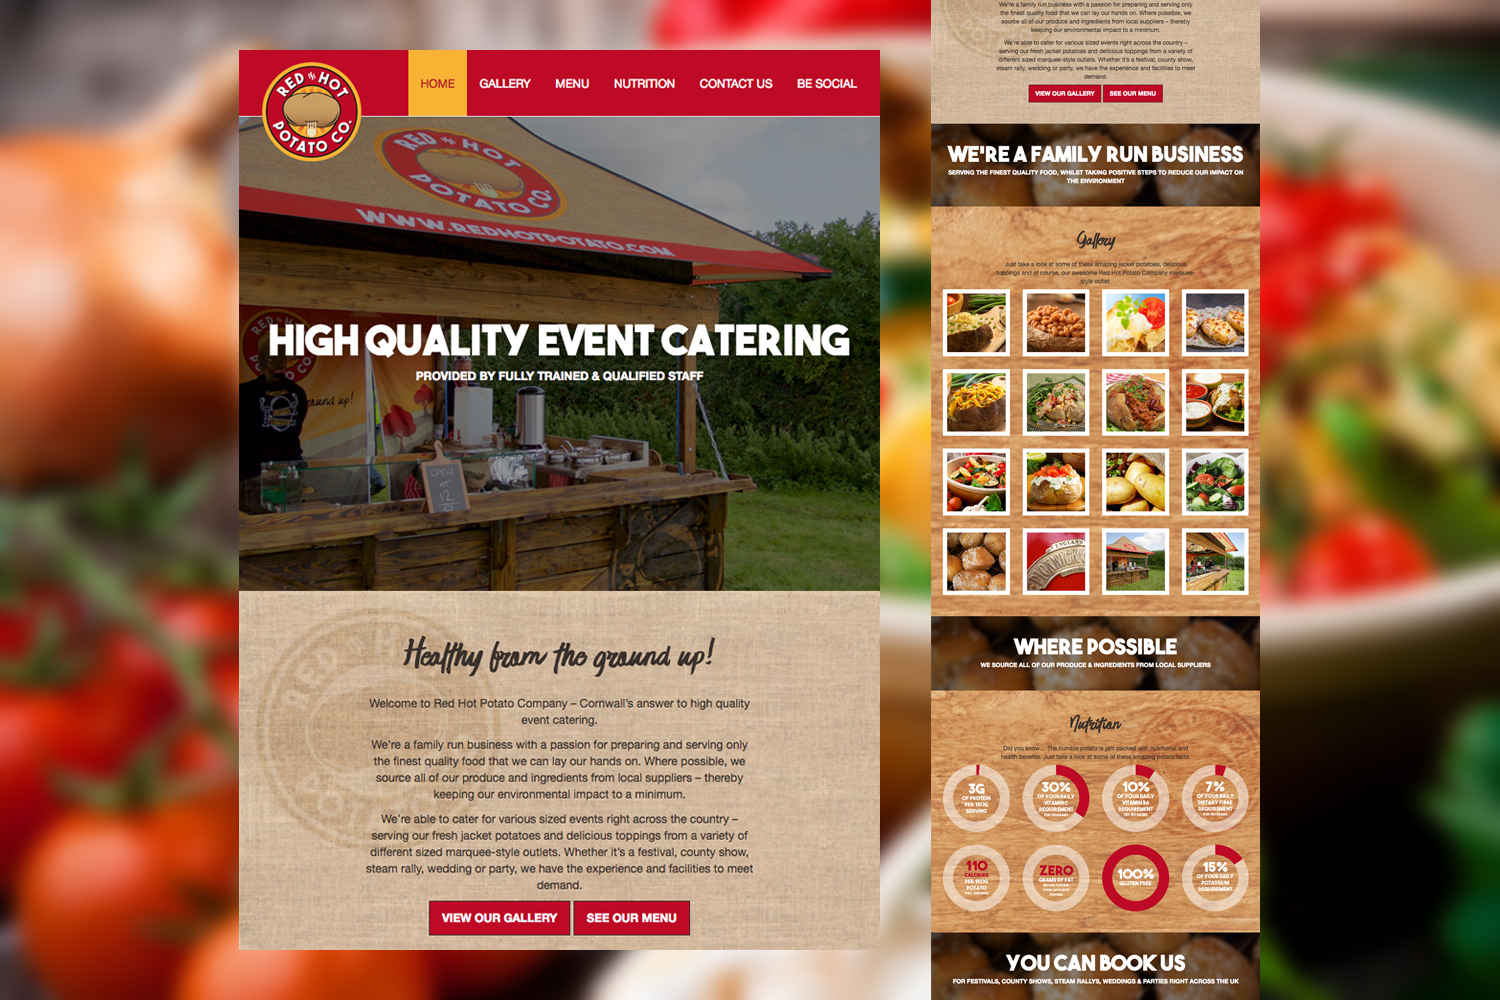 Project Focus - Red Hot Potato Company | Jordan Weeks Creative Services